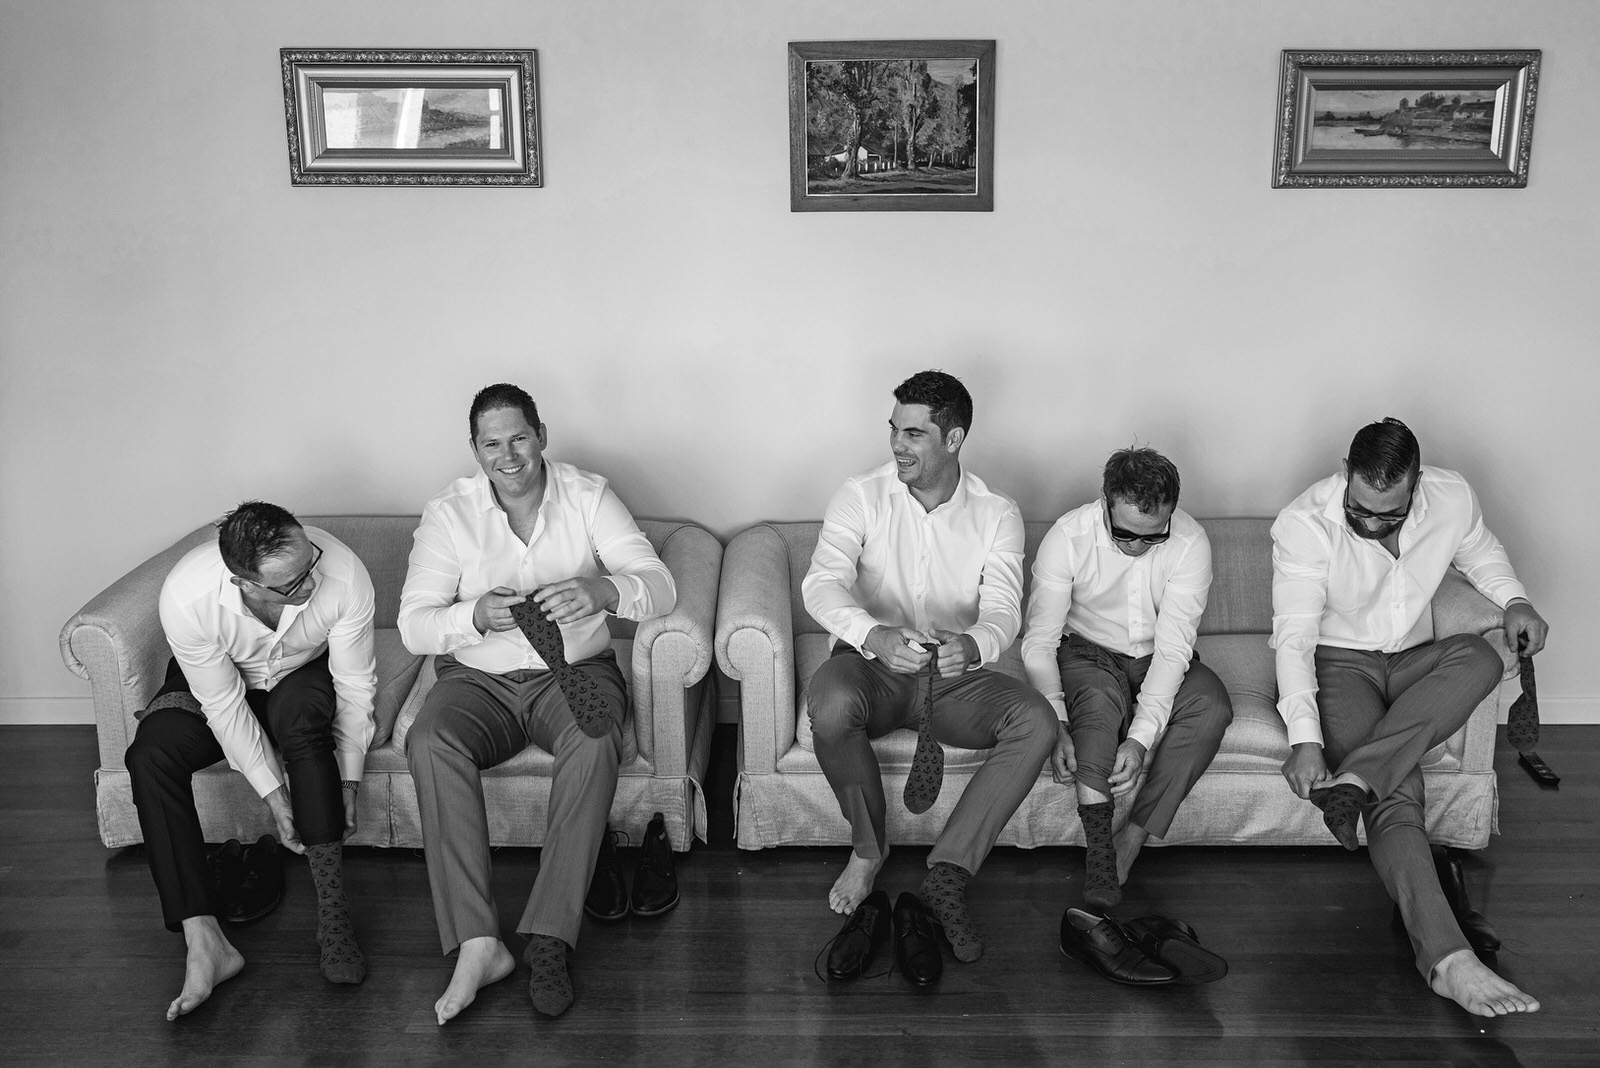 newfound-at-glendowie-auckland-wedding-photographers-051